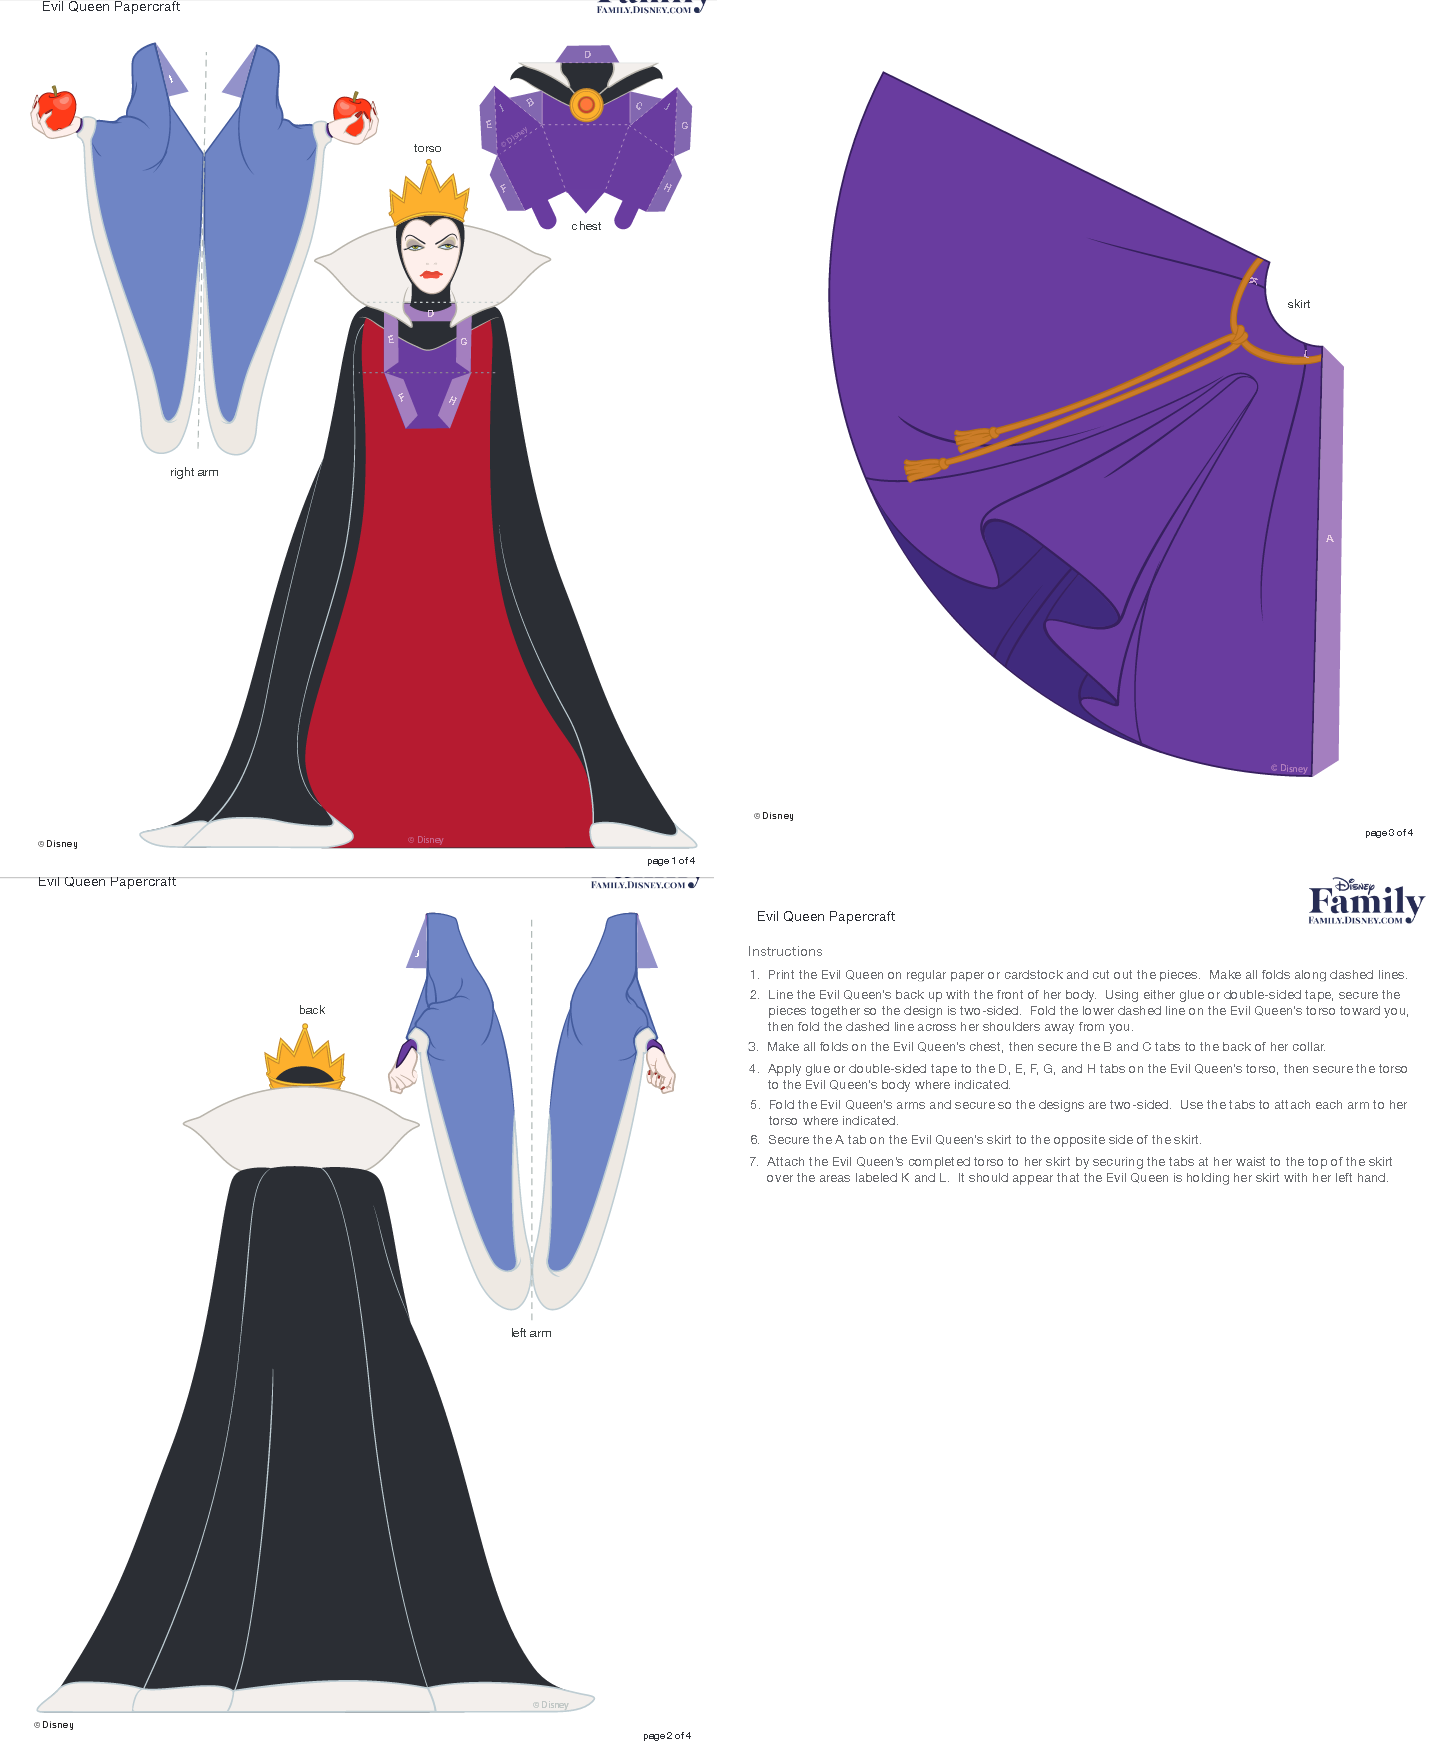 http://family.disney.com/craft/evil-queen-papercraft ... - photo#14